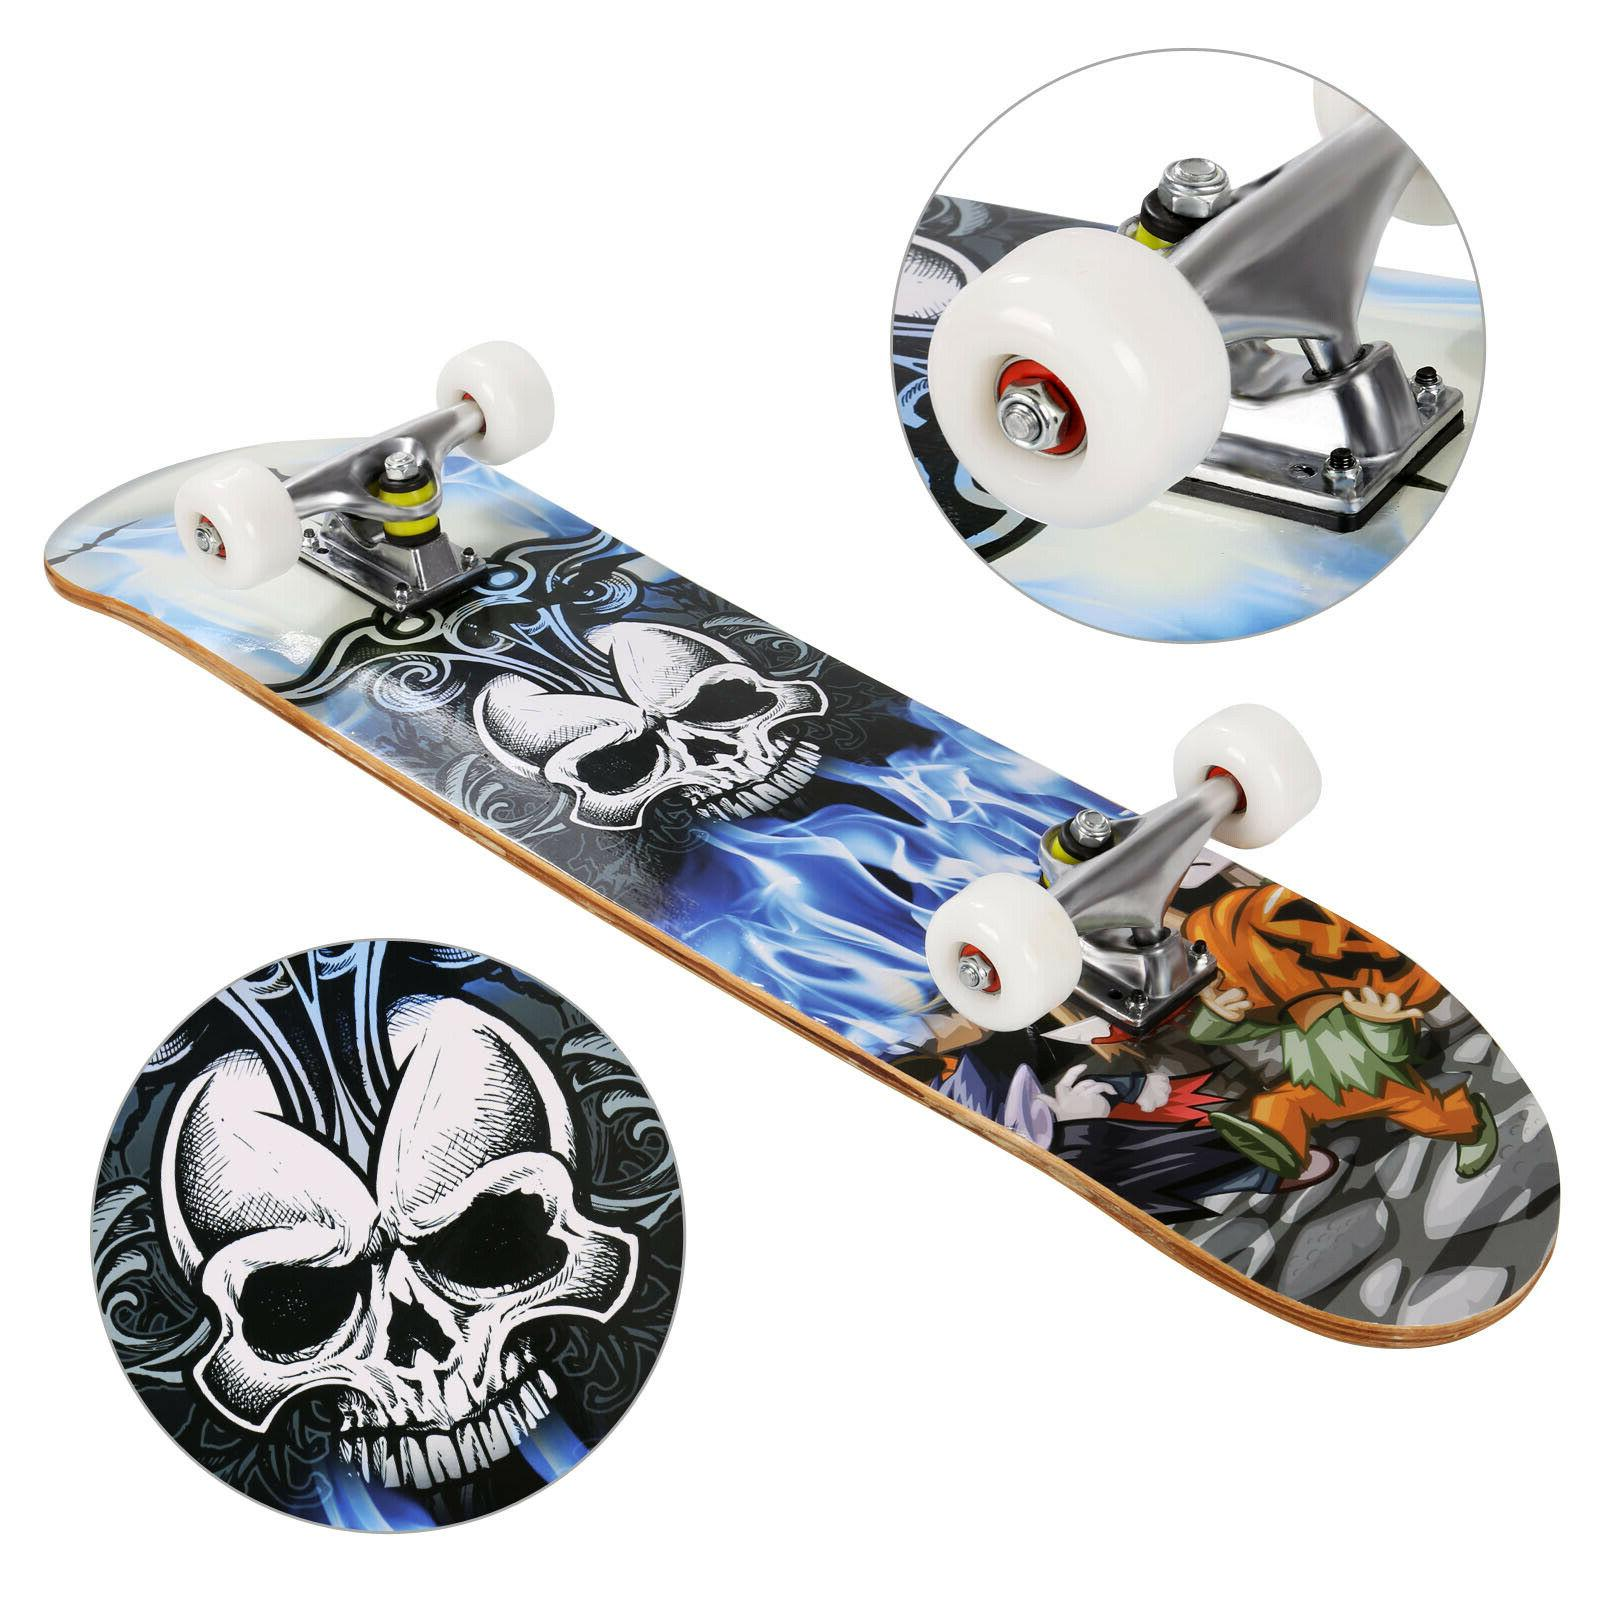 professional adult skateboard complete wheel truck maple